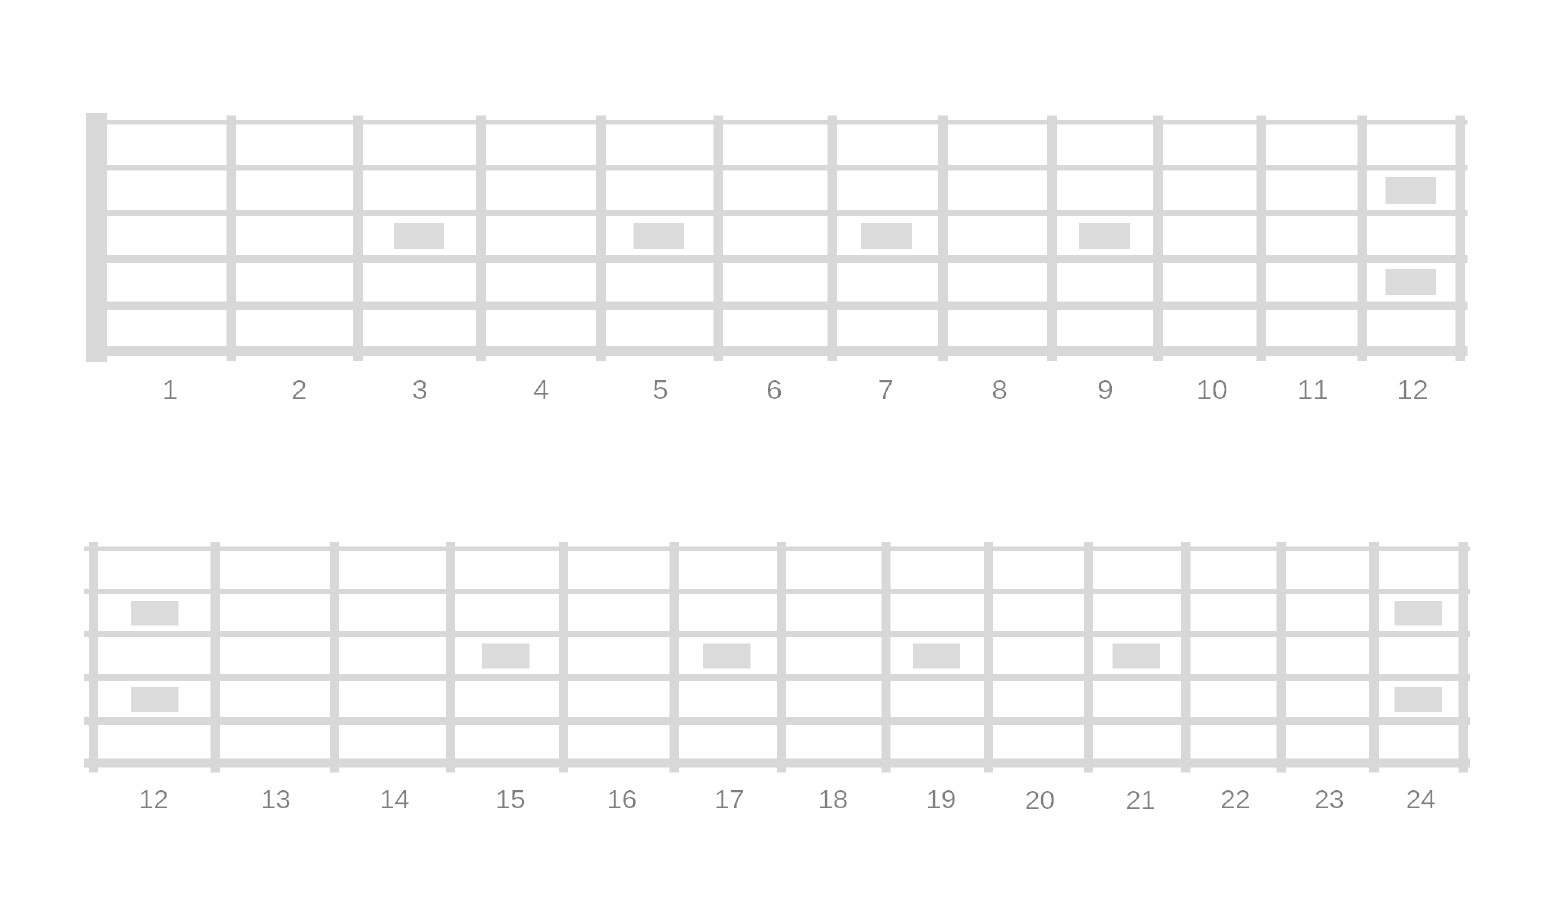 Blank Bass Fretboard Diagram Printable Blank Fretboard Diagrams Right and Left Handed